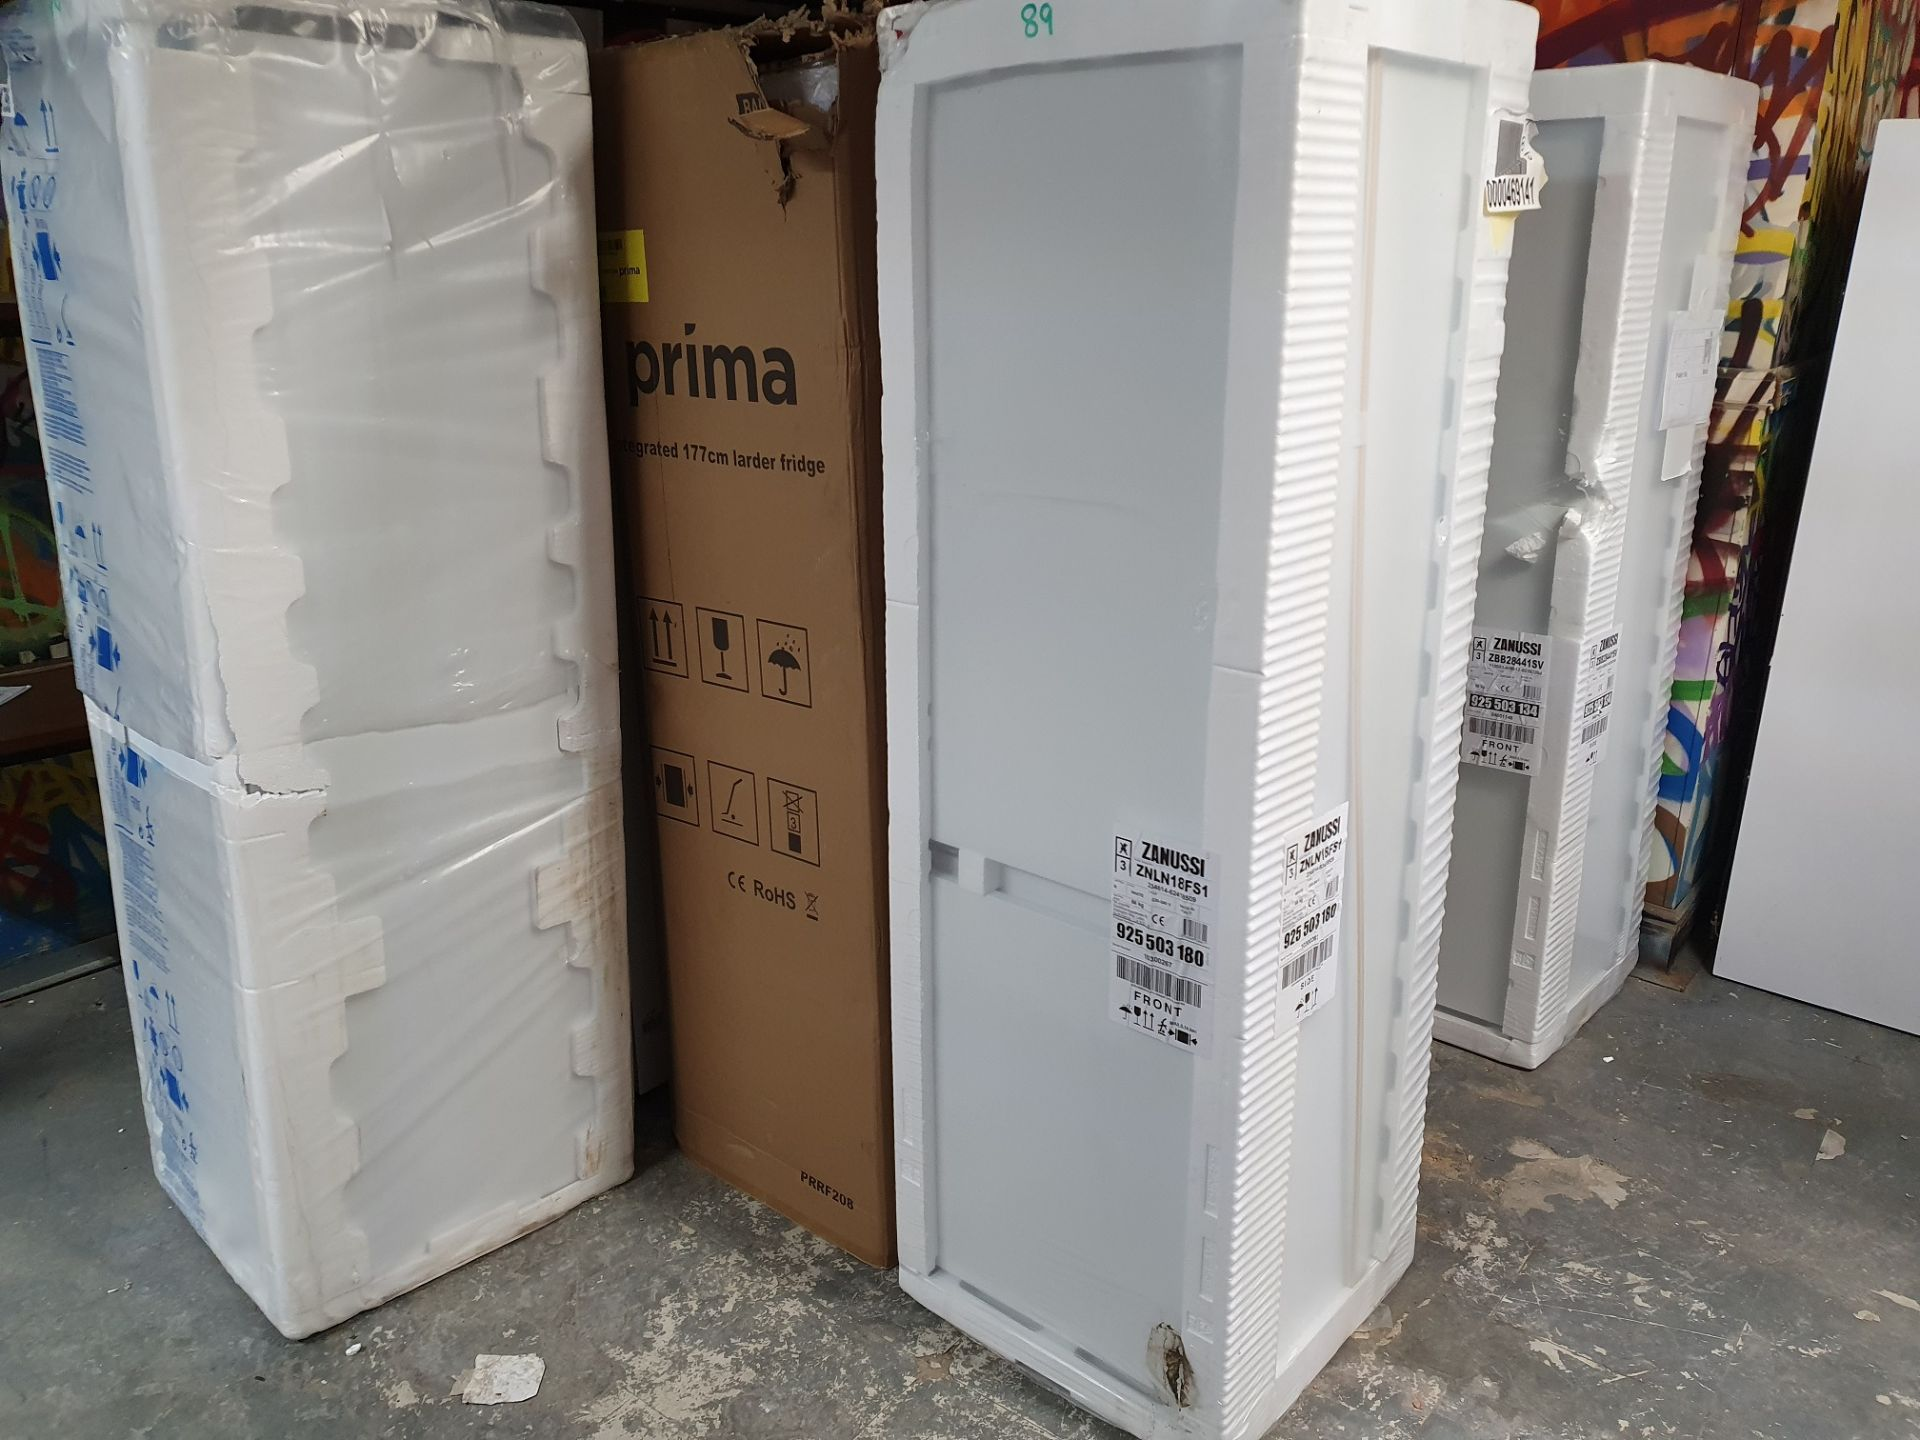 NEW/GRADED AND PACKAGED Prima PRRF208 Tall 177.6cm Integrated Larder Fridge (Slight external - Image 6 of 14